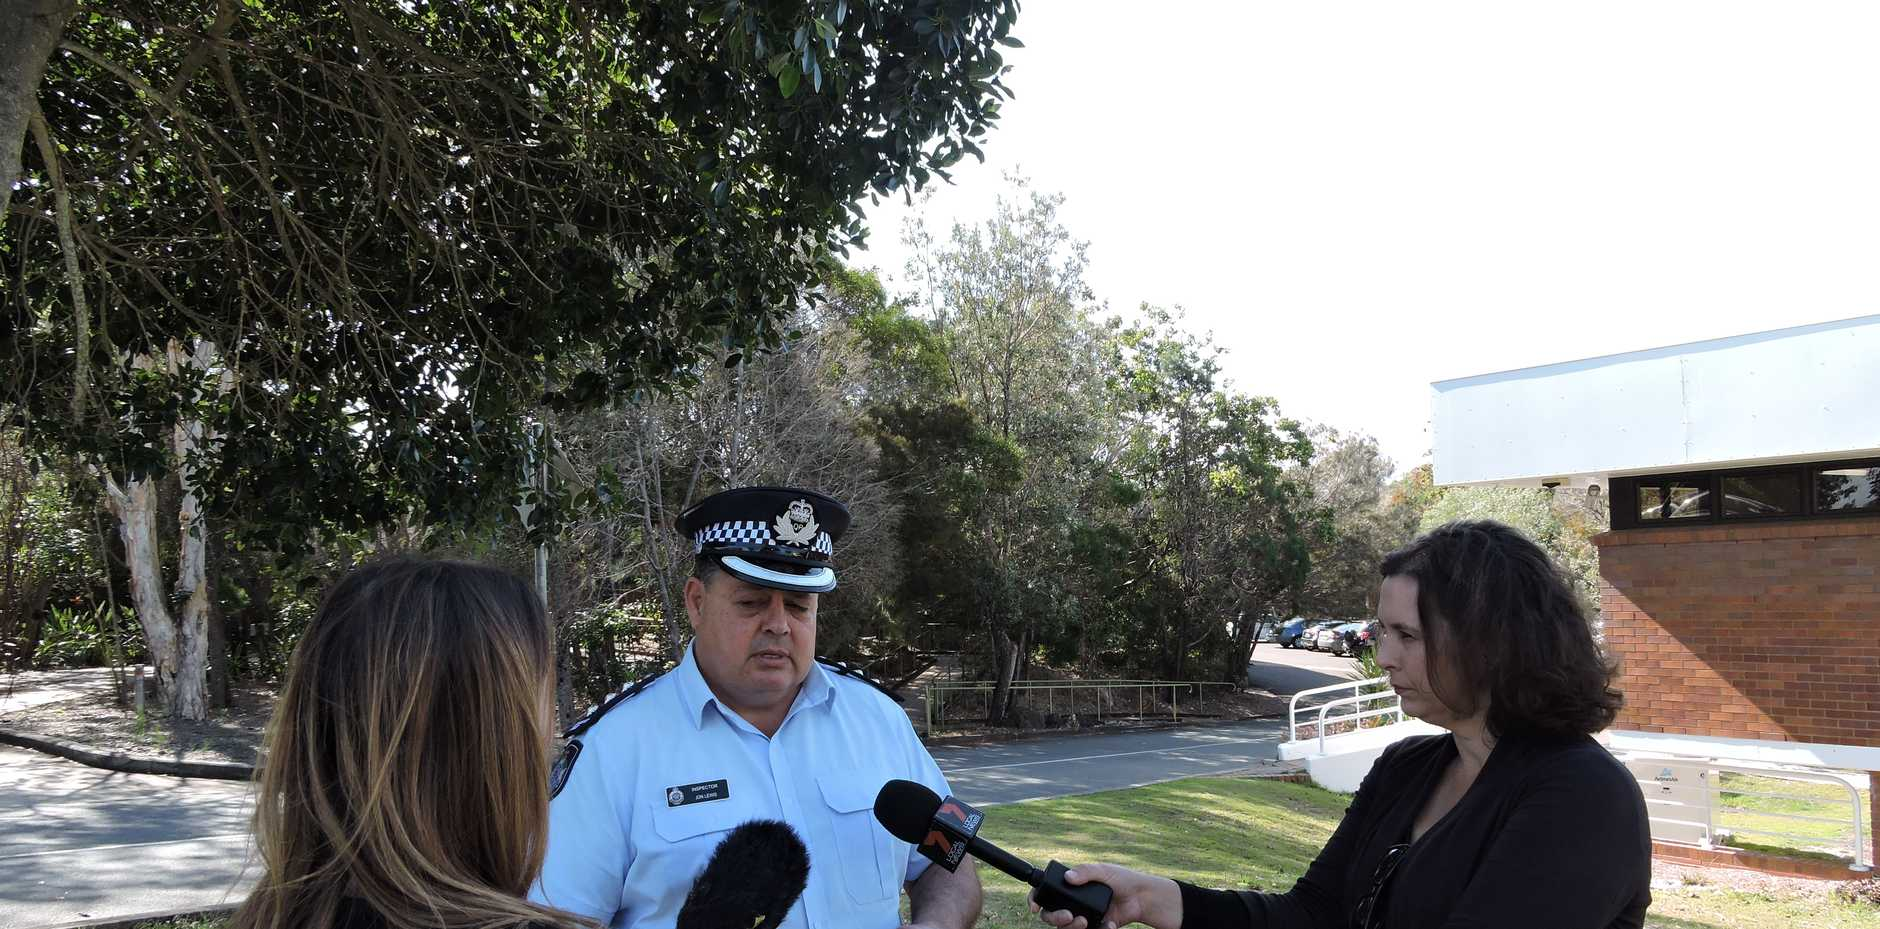 Inspector Jon Lewis briefs the media on the latest leads in the Noosa shooting.